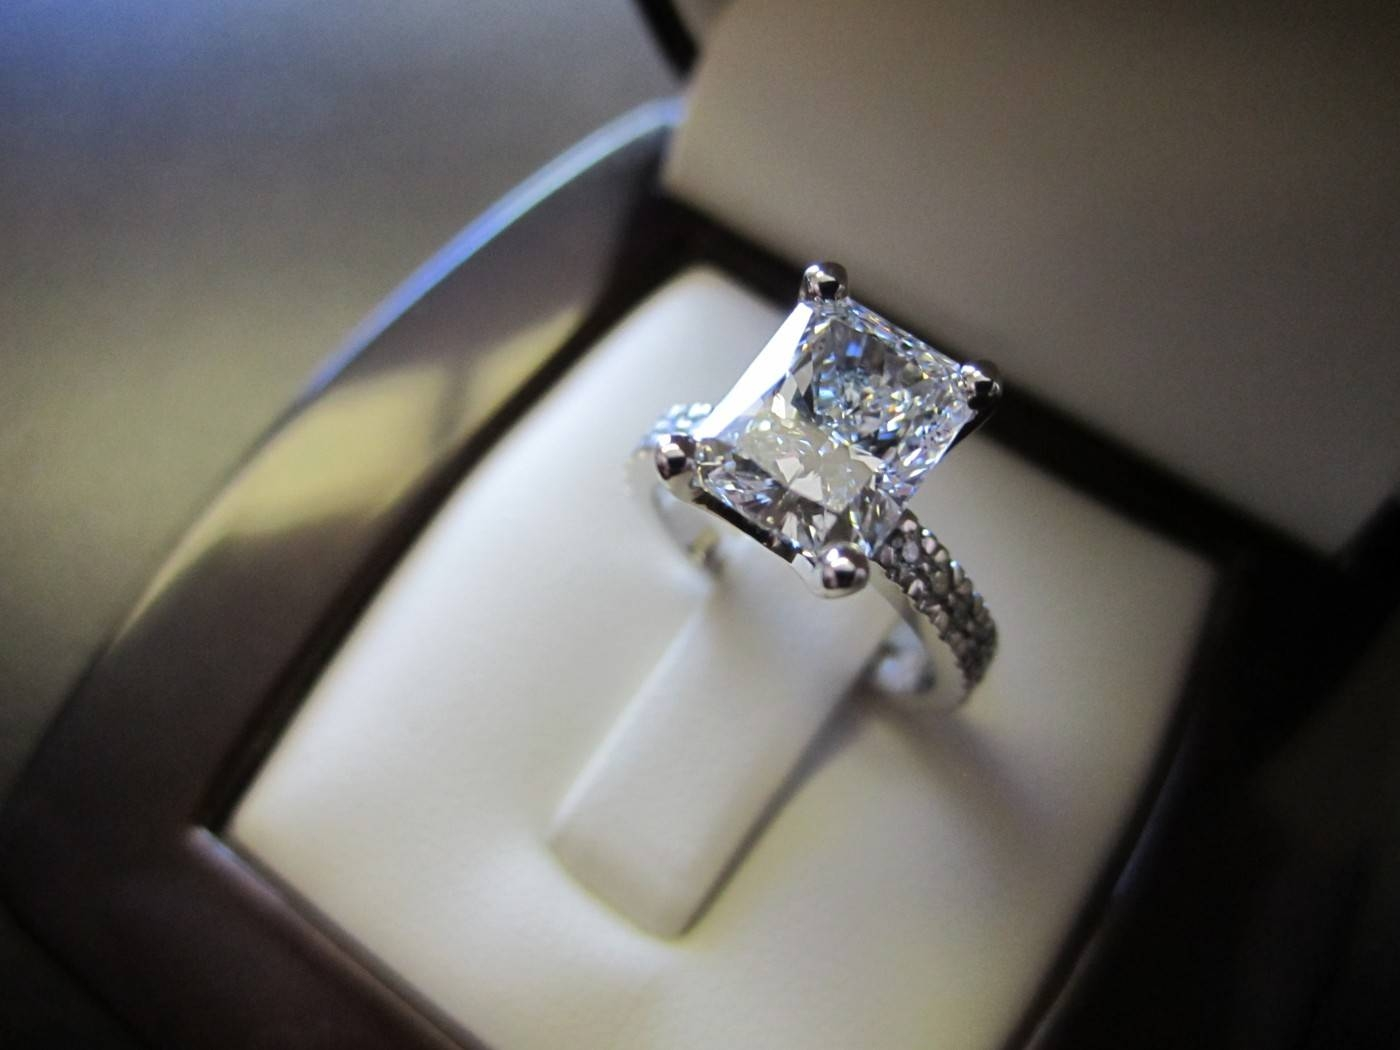 Engagement Rings : Amazing Radiant Cut Diamond Engagement Rings My Regarding Radiant Wedding Rings (View 3 of 15)